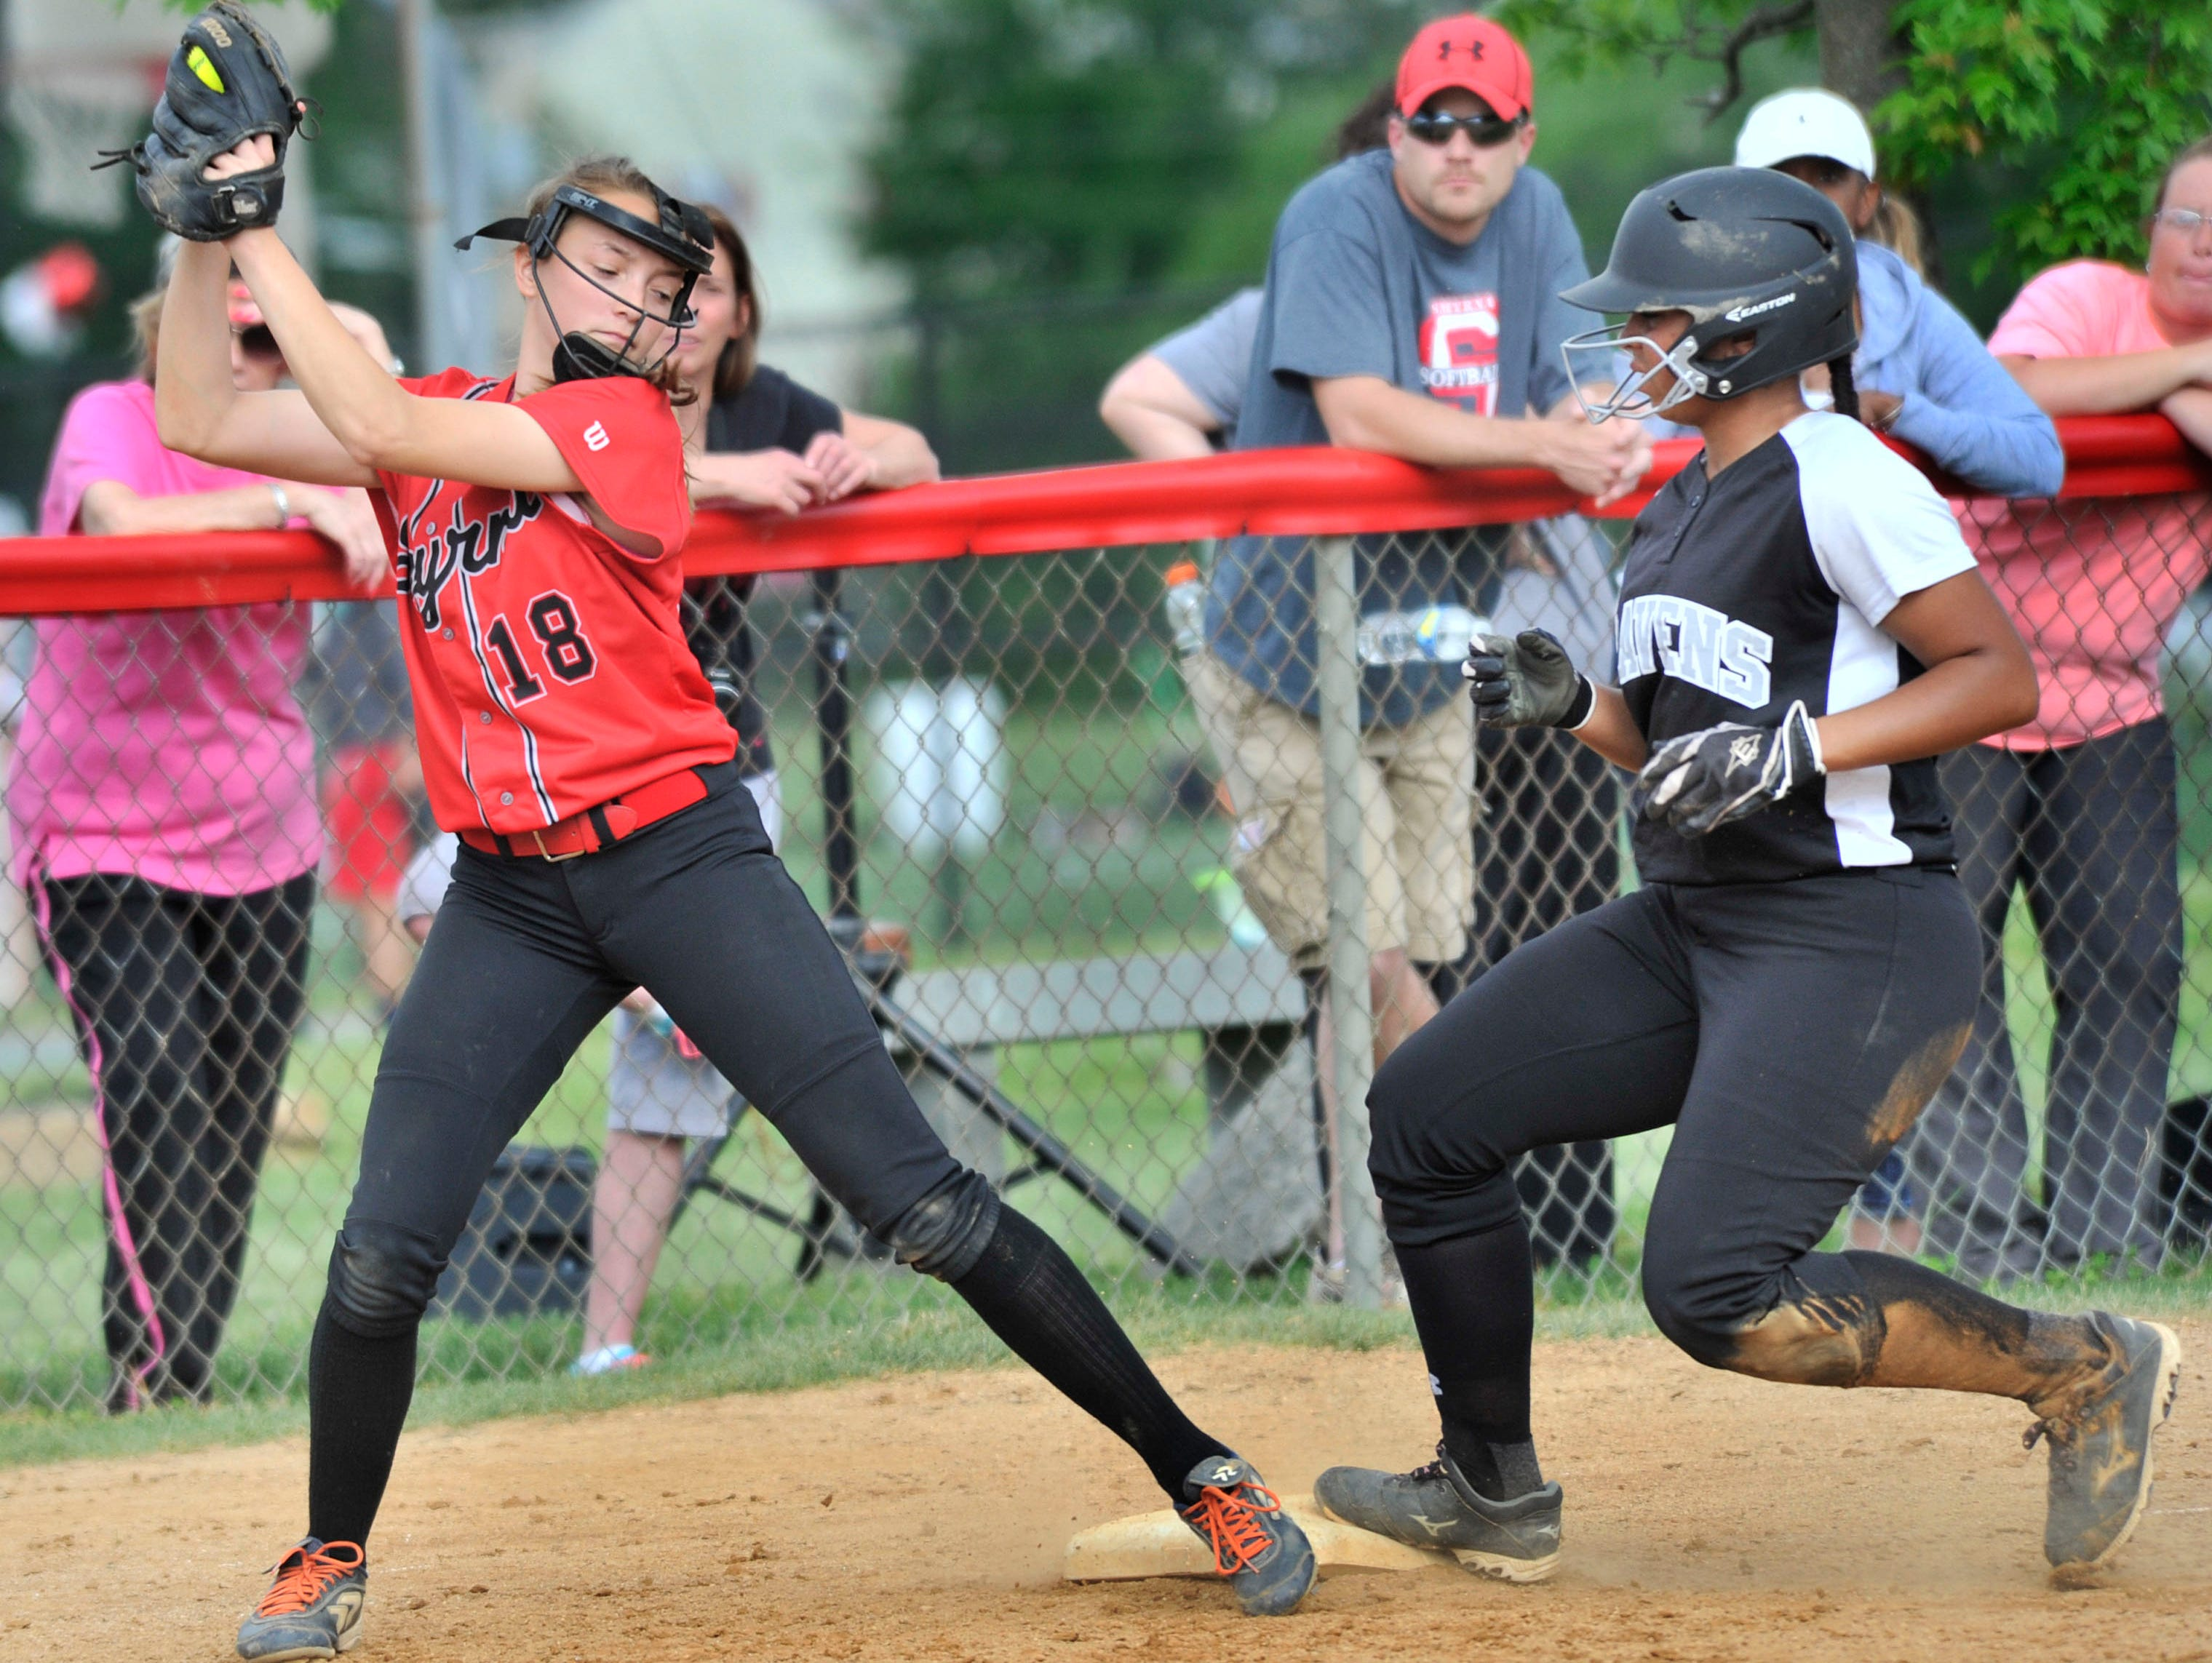 Sussex Tech's Madison Watson moves to third on a wild pitch last Thursday as Smyrna's Sarah Miller snags a late throw. Sussex Tech is ranked No. 2 statewide in softball.